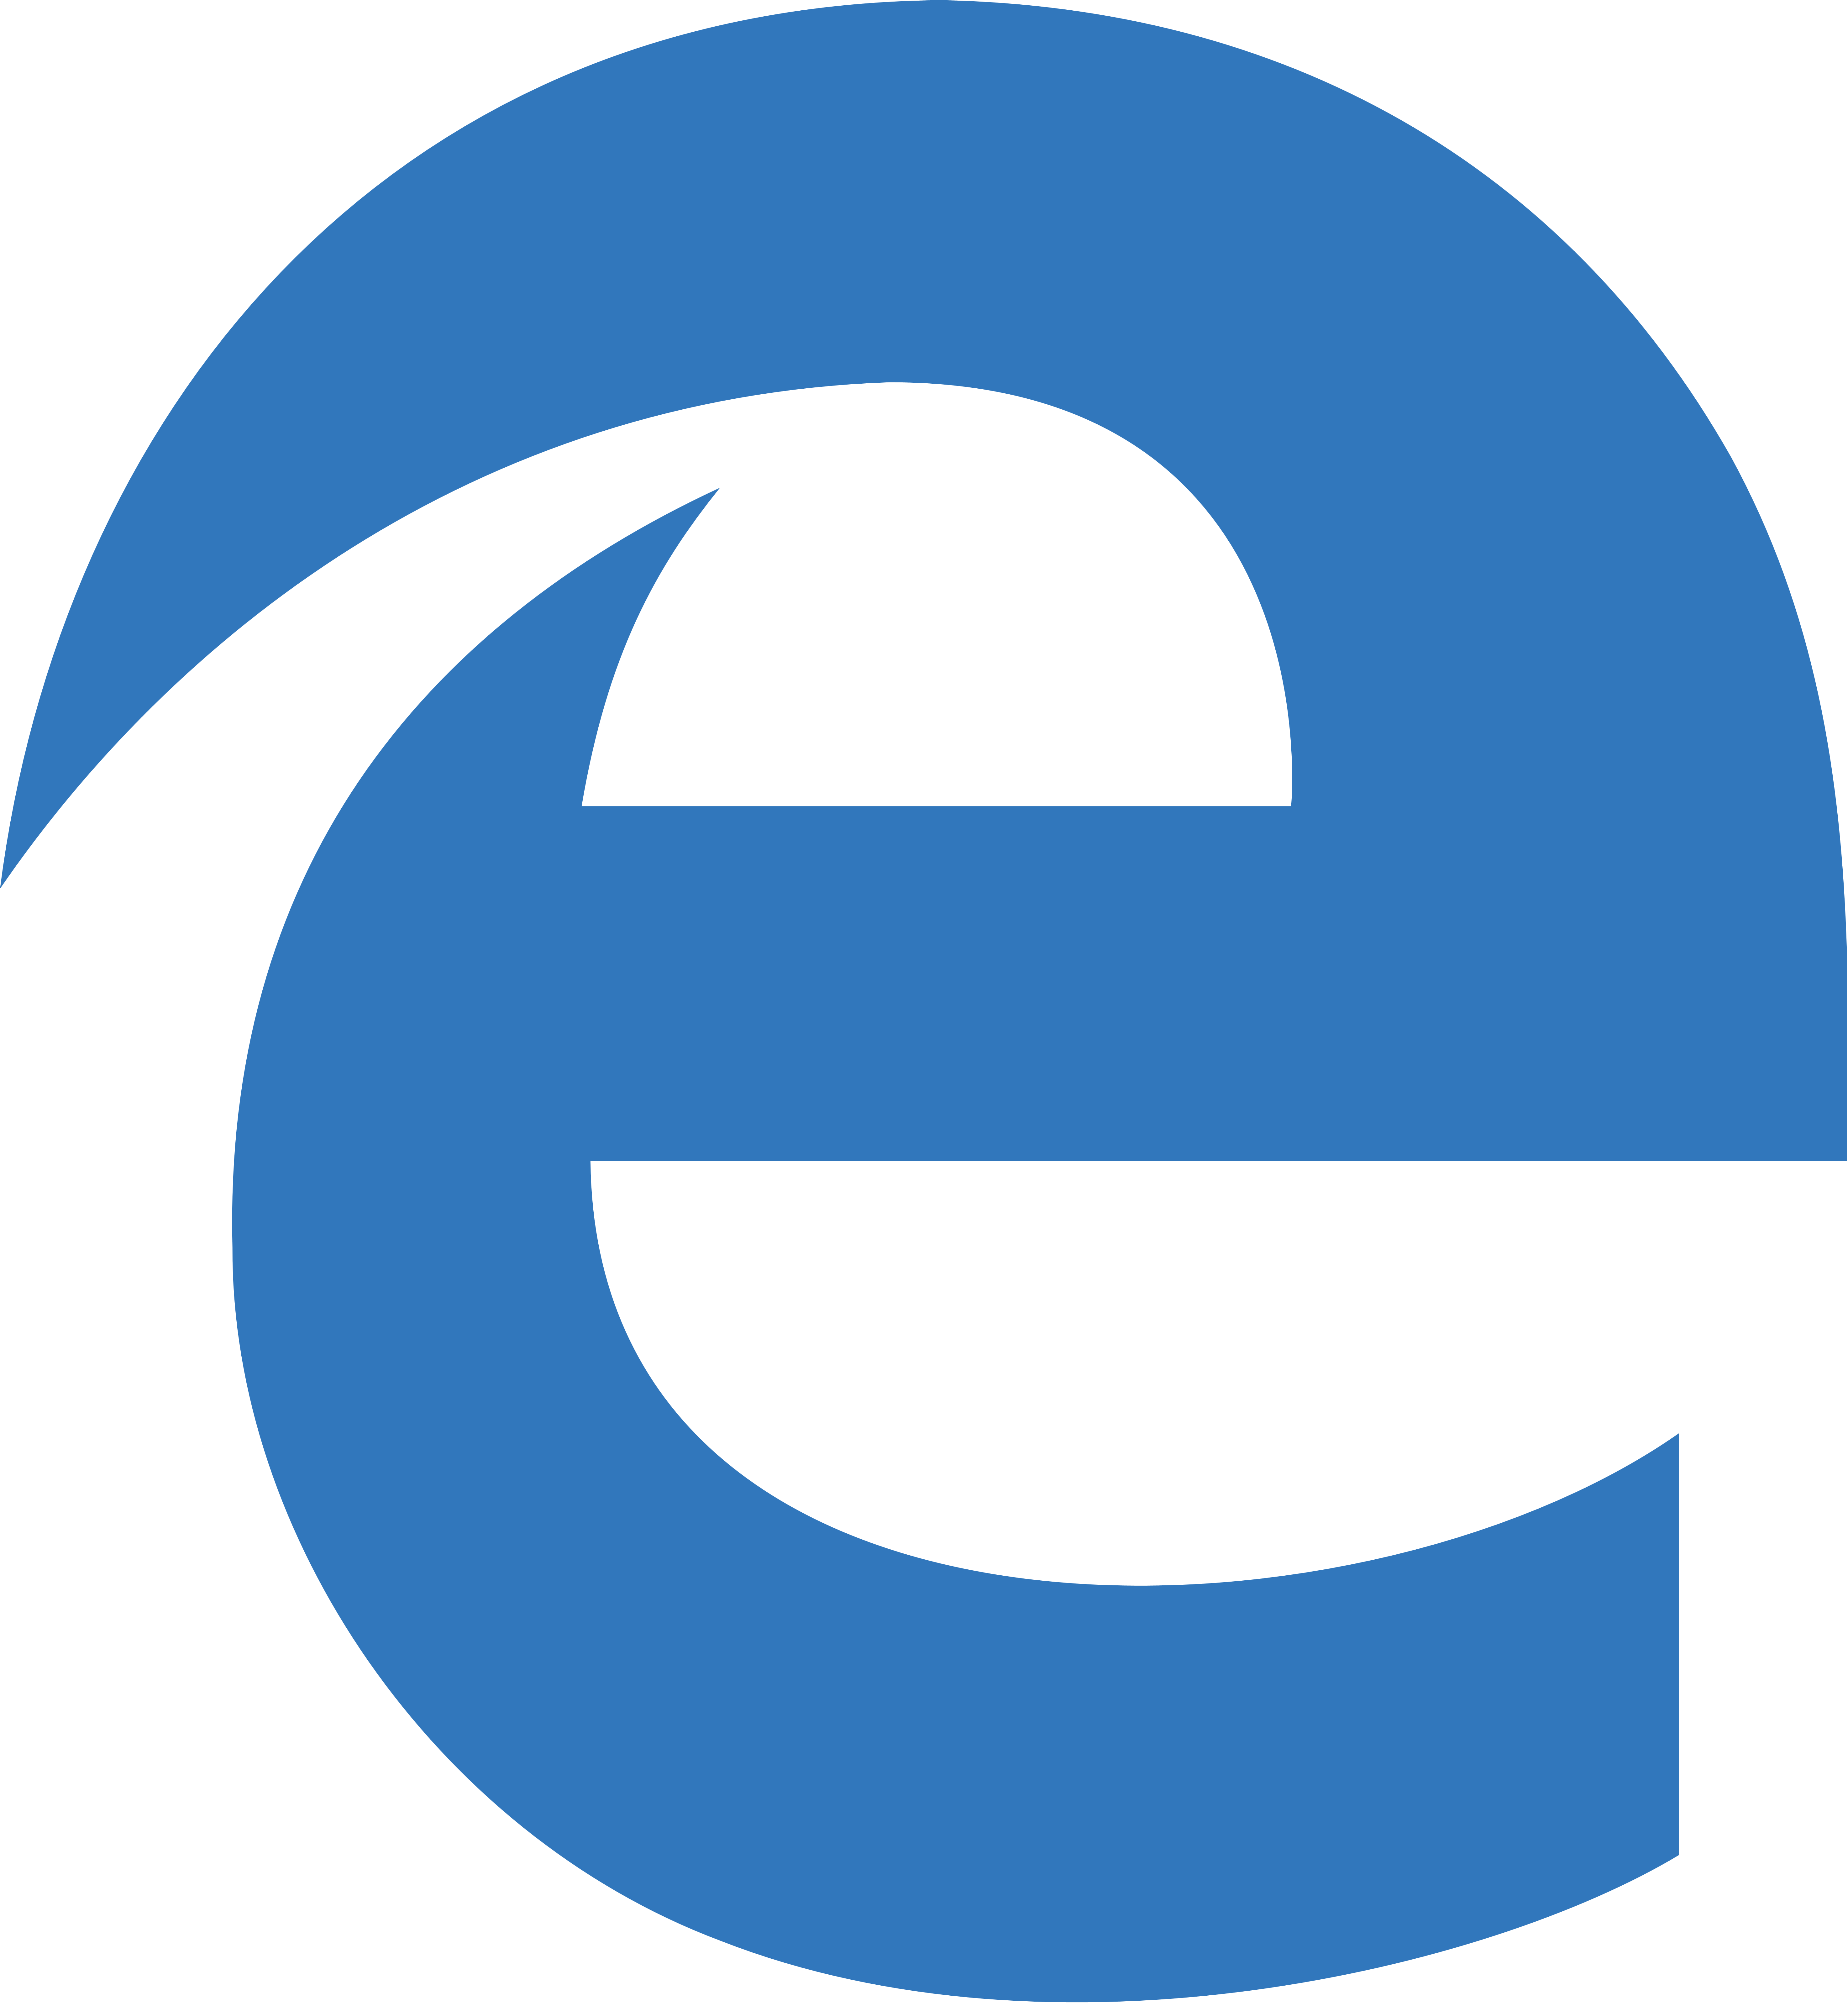 logo internet, microsoft edge logos download #26065